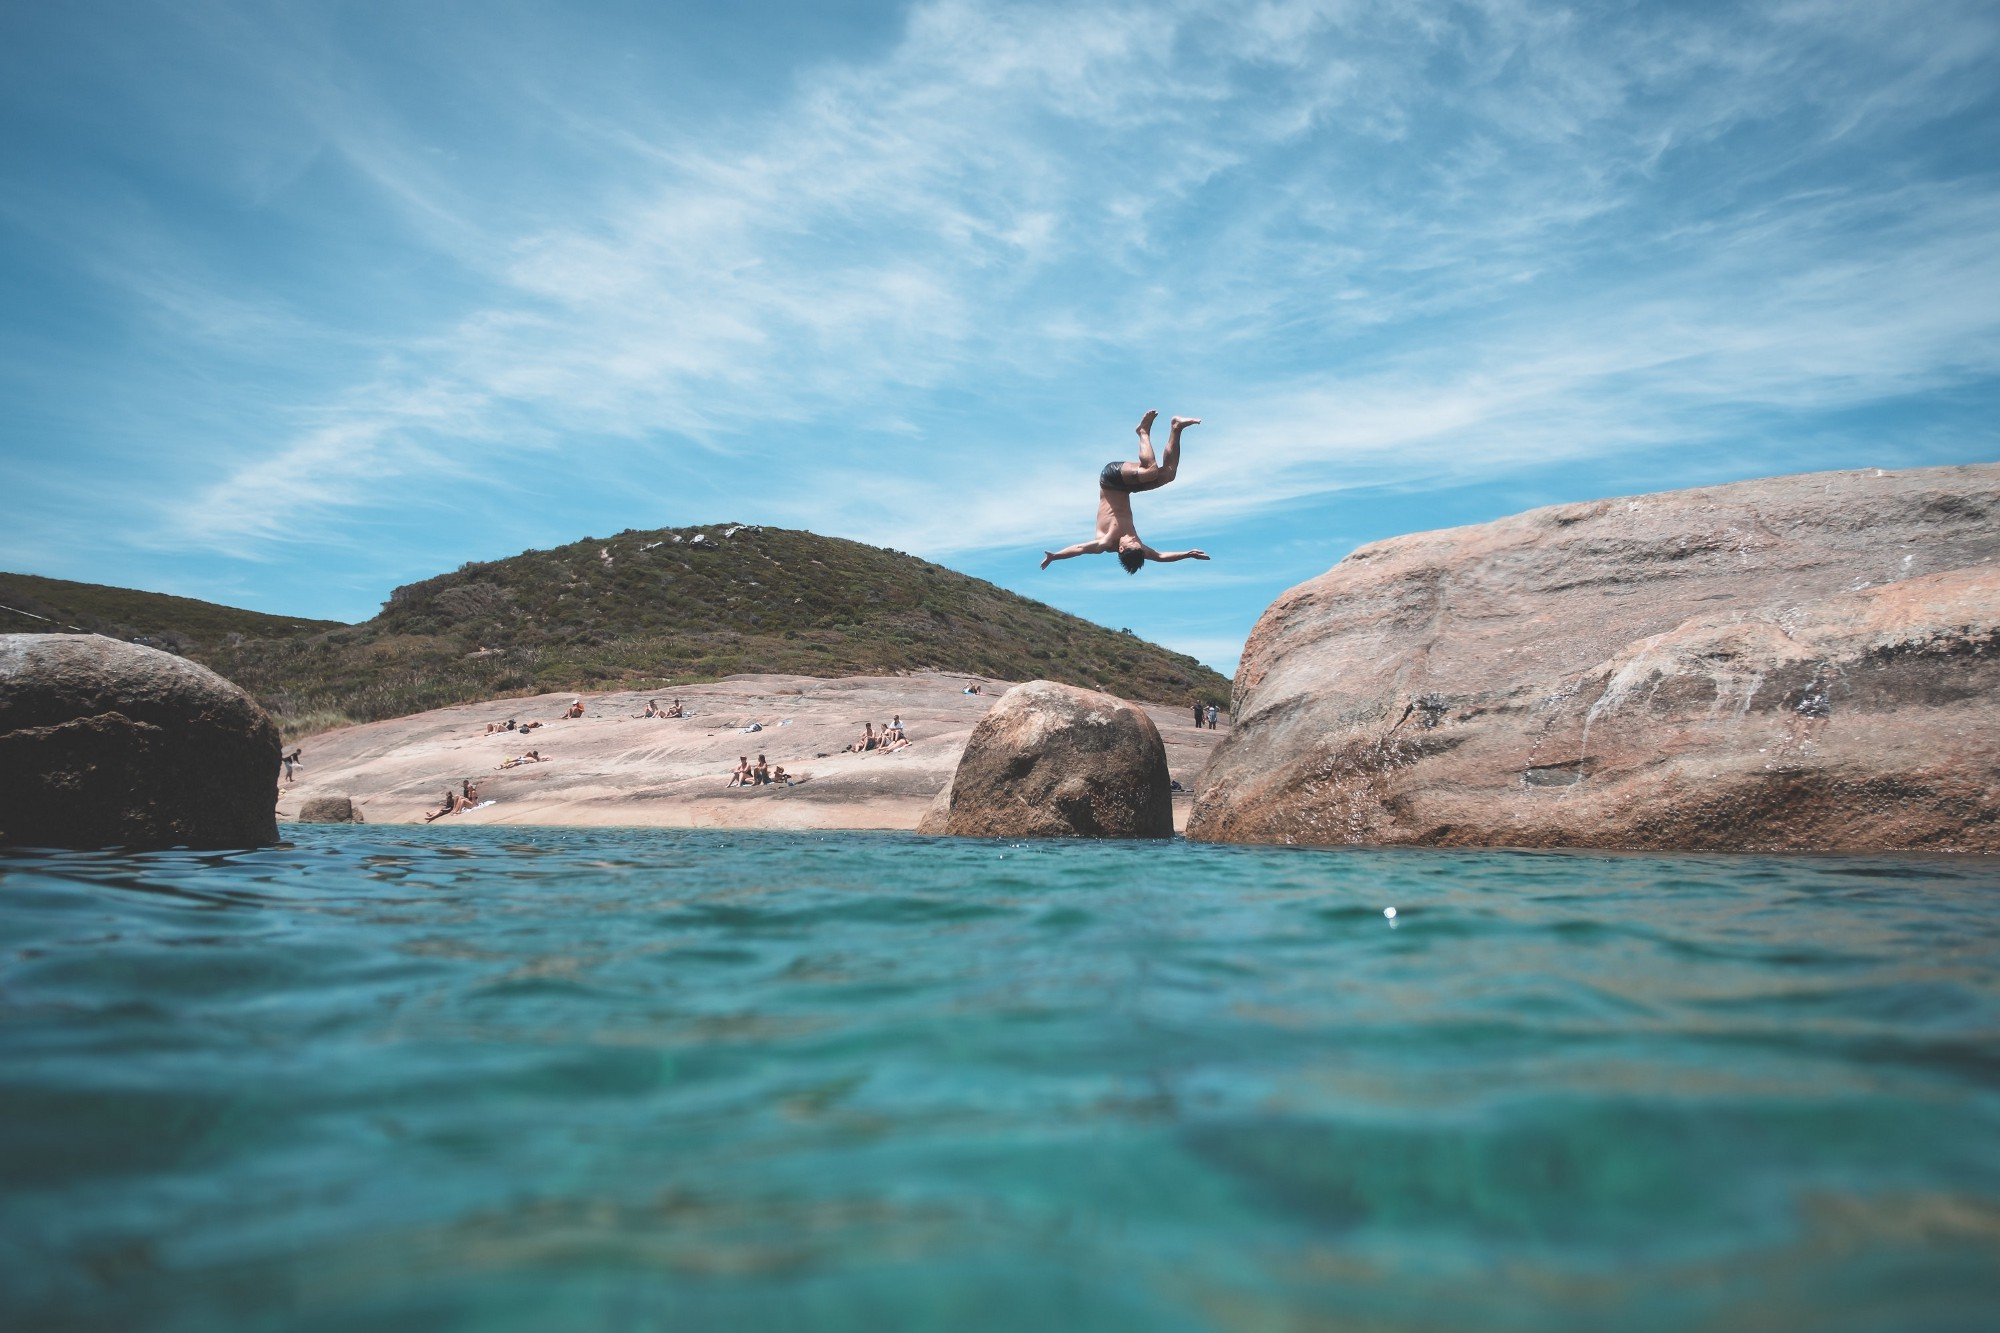 man somersaulting into the ocean